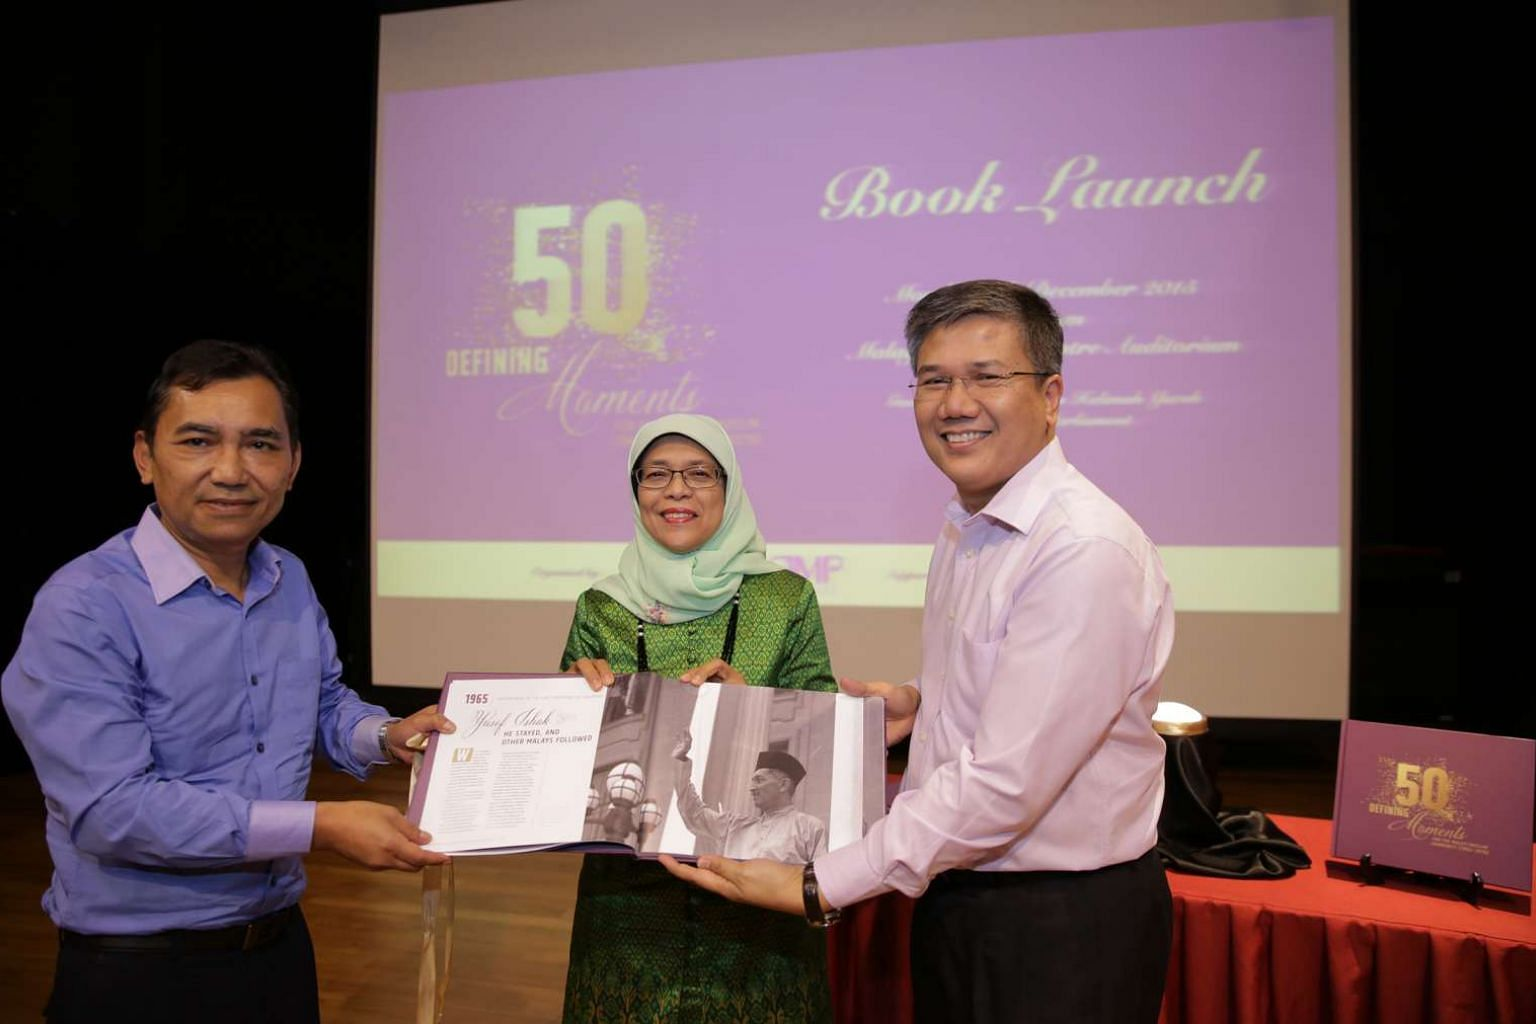 (From left) Berita Harian editor Mohd Saat Abdul Rahman, Speaker of Parliament Halimah Yacob and AMP chairman Azmoon Ahmad at the launch of the book, 50 Defining Moments For The Malay/Muslim Community, at the Malay Heritage Centre yesterday.